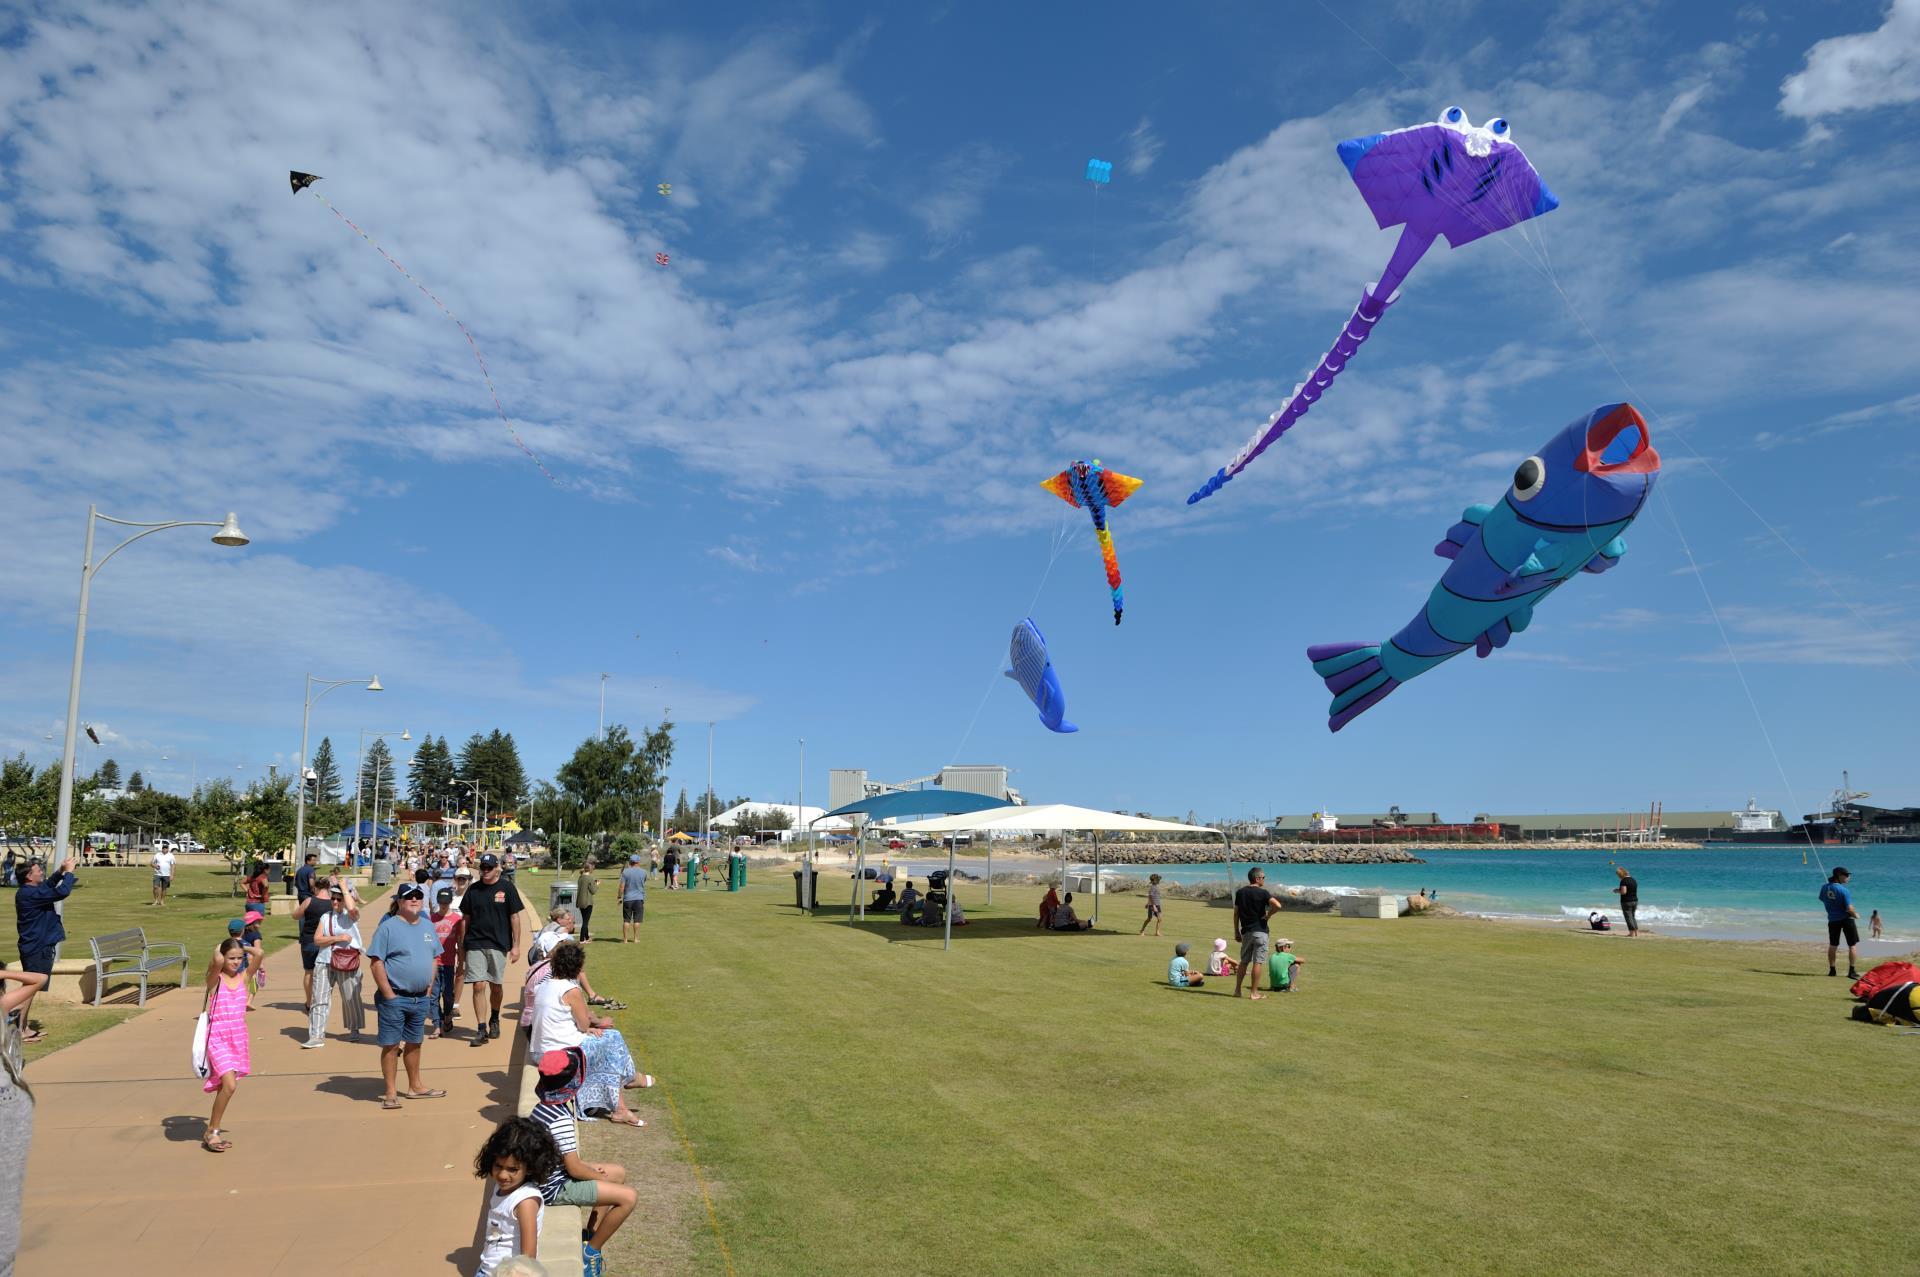 Giant kites to WoW crowds at Festival